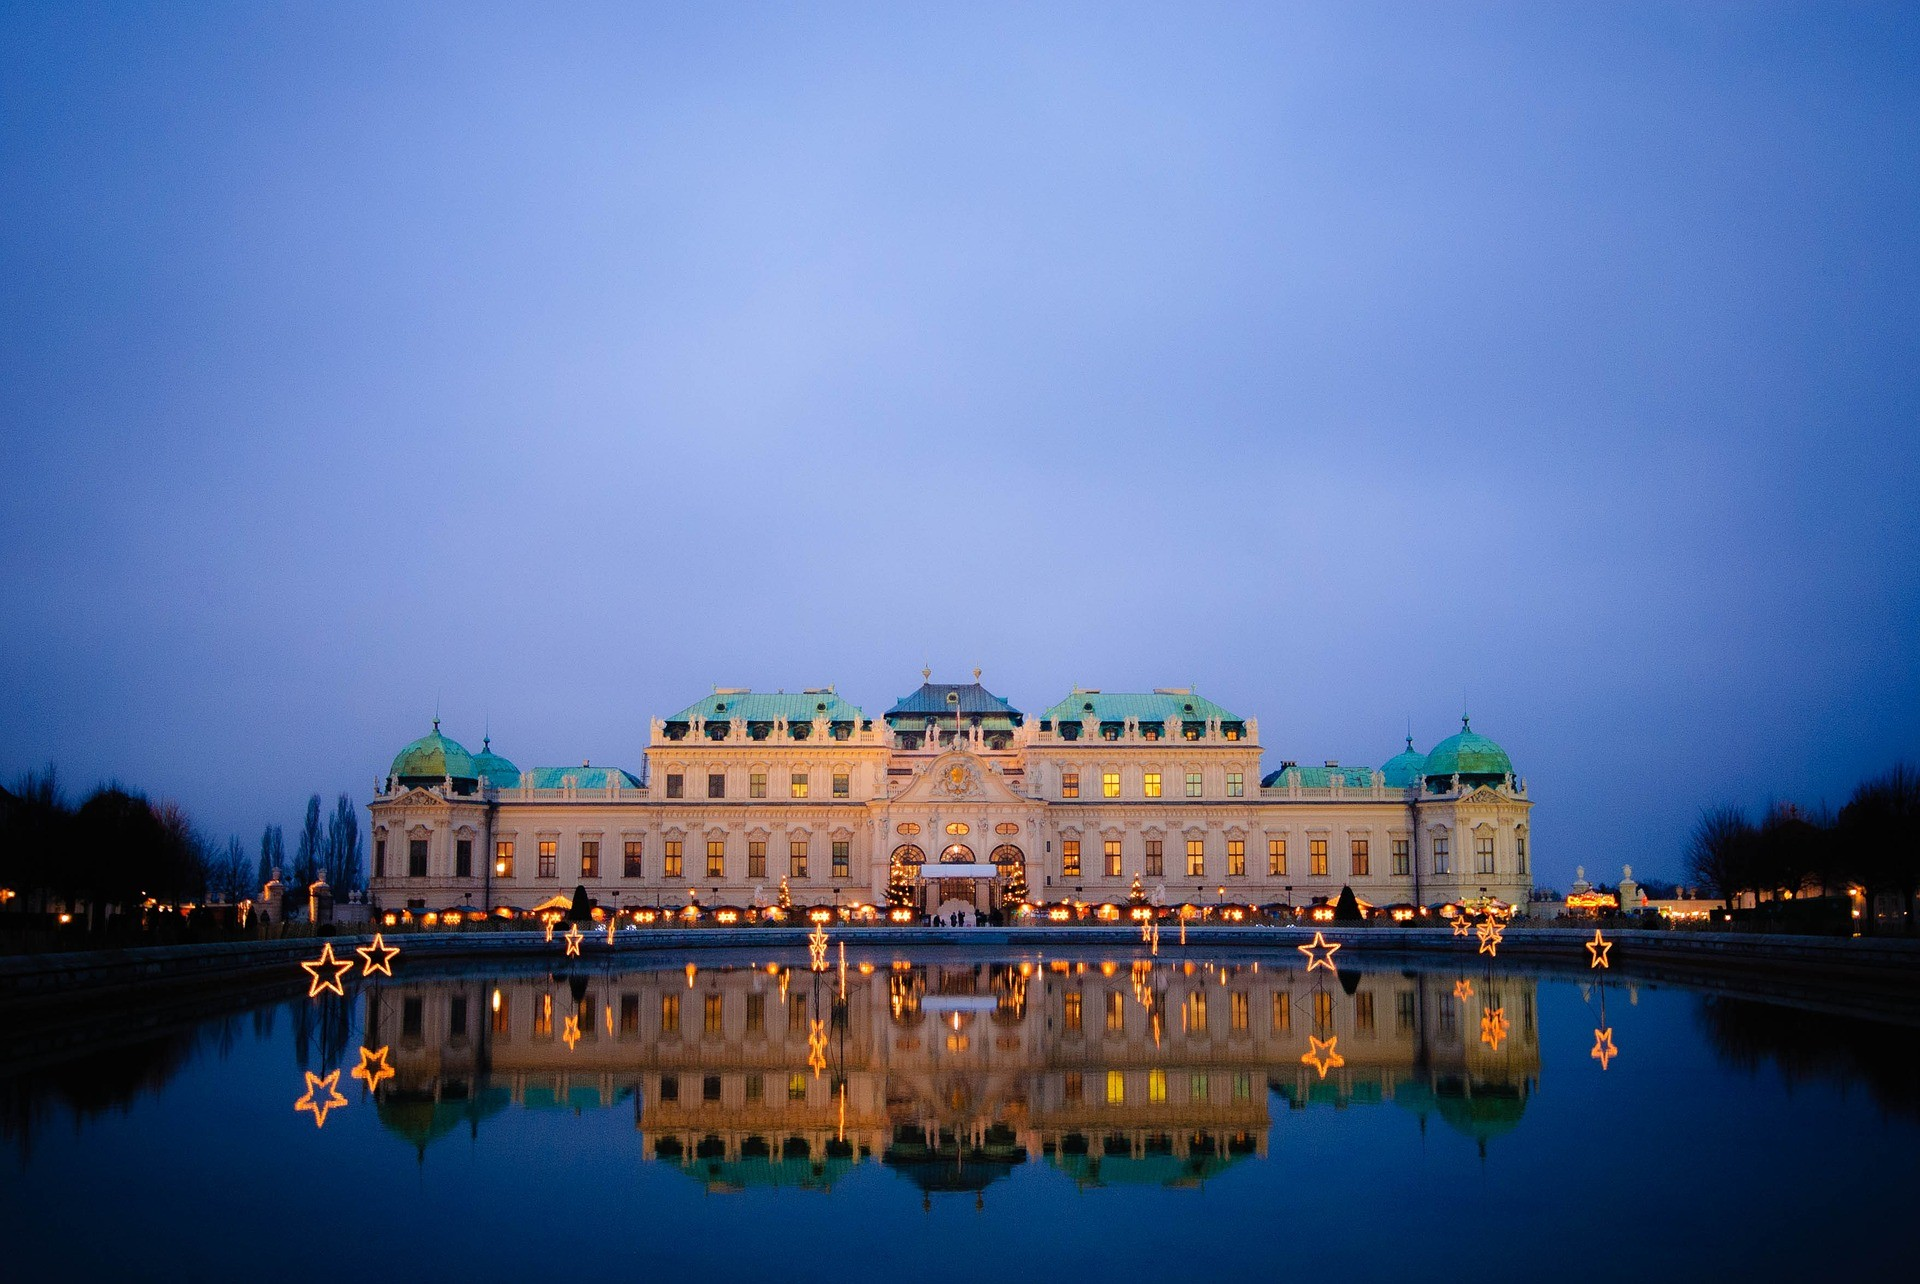 Belvedere Gallery, Vienna: All year